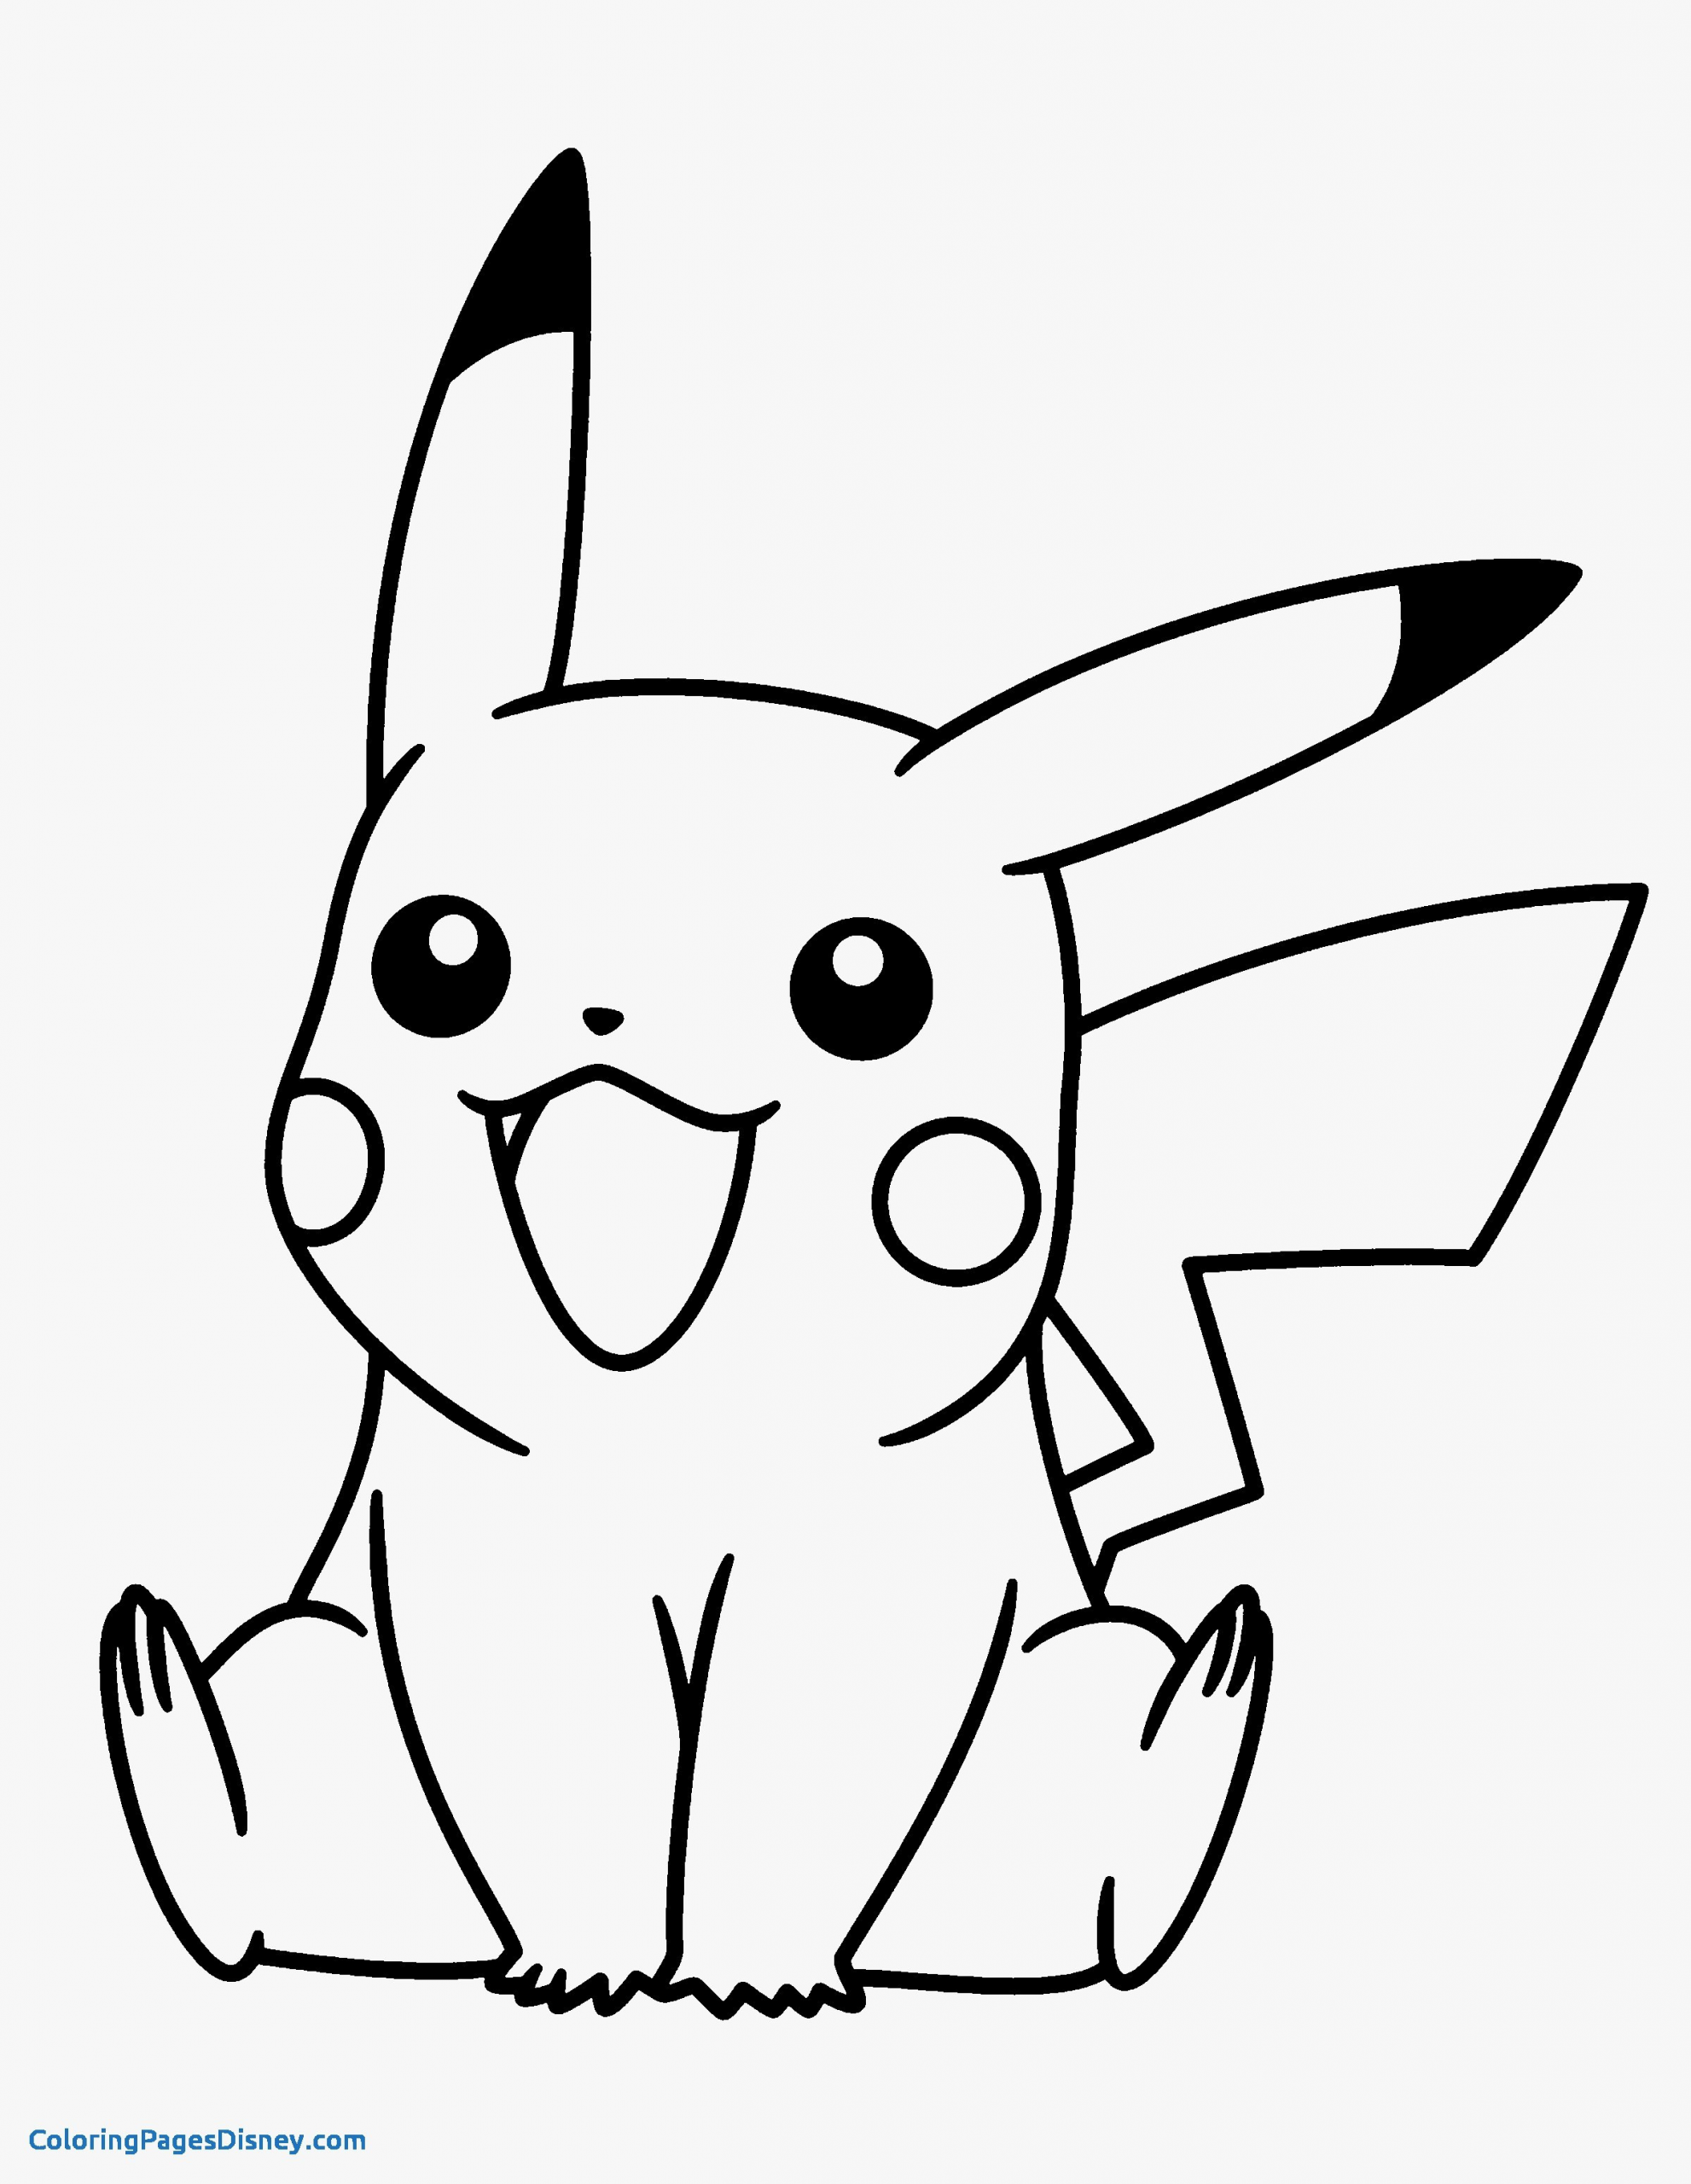 Pokemon Coloring Page Pikachu Youngandtae Com Pikachu Coloring Page Kitty Coloring Pokemon Coloring Pages